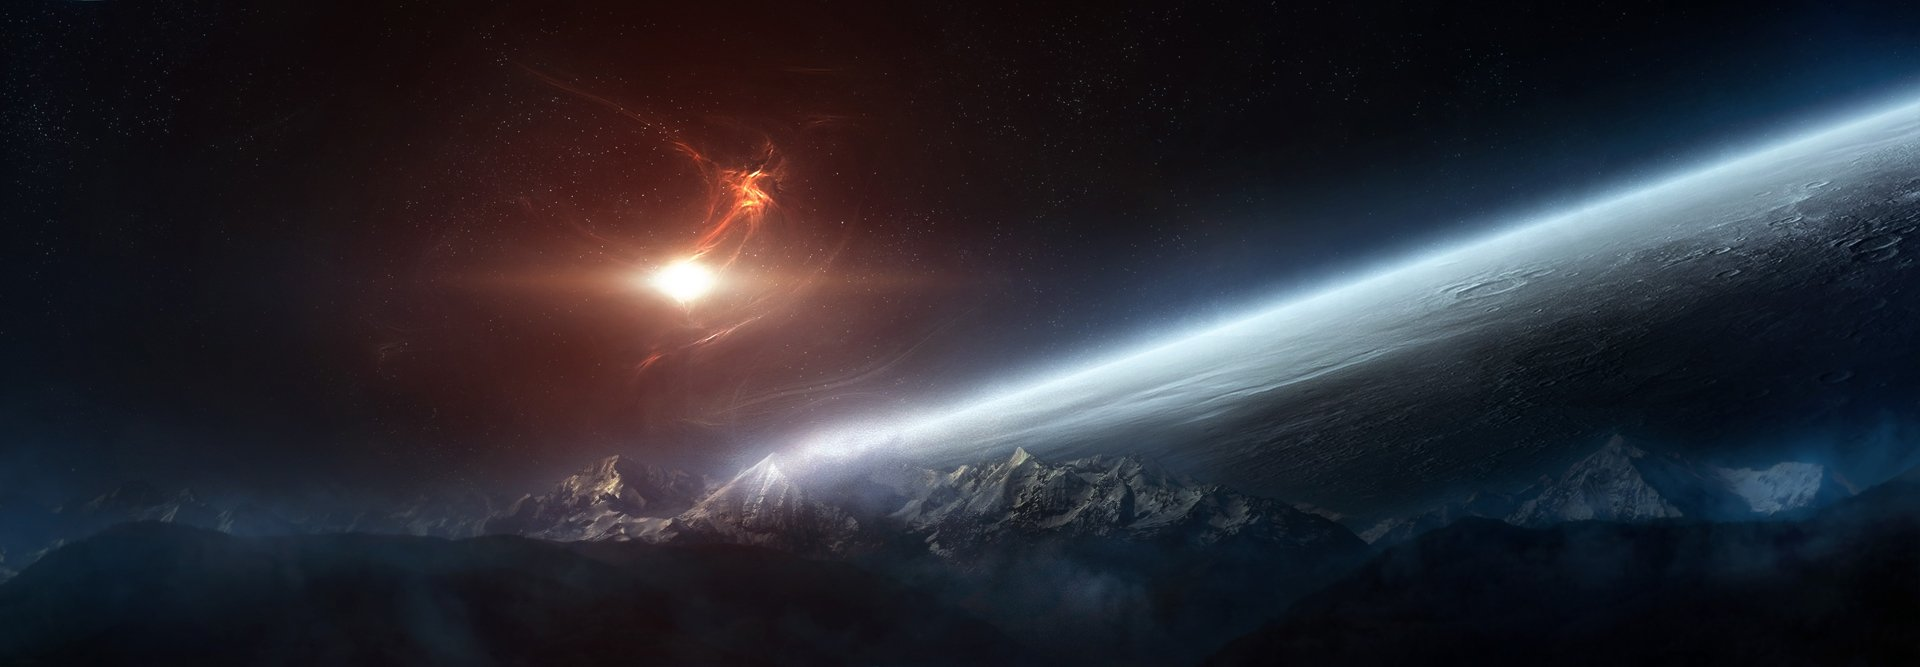 Dual Monitor Wallpaper Space | All HD Wallpapers Gallery